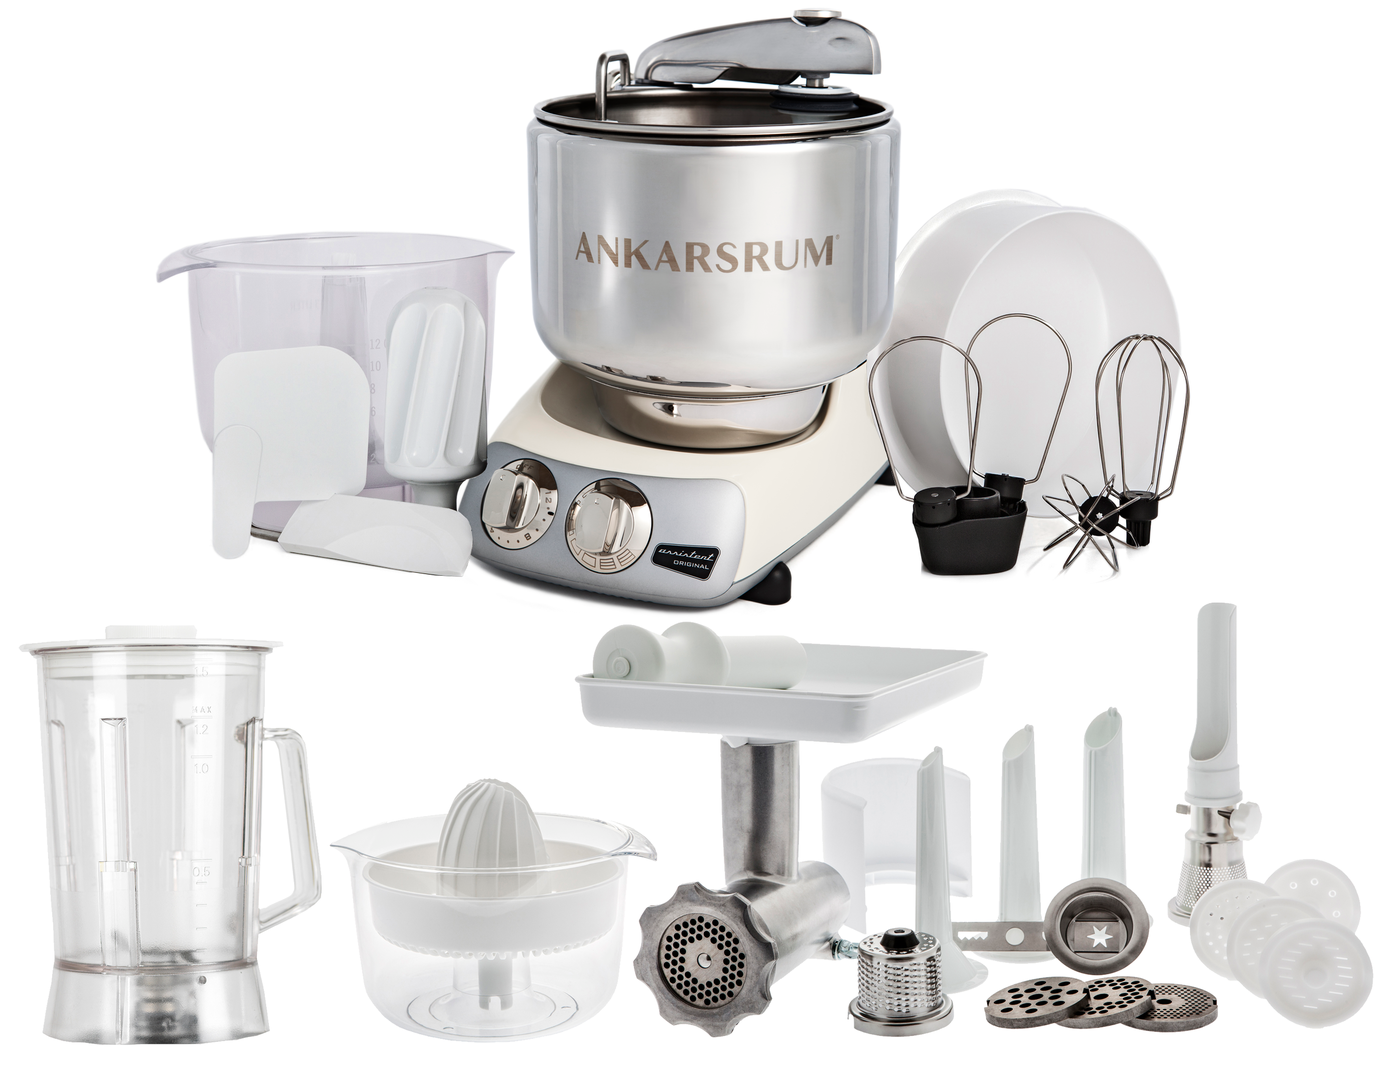 Ankarsrum Original AKM6290CL Deluxe mixer, light crème (2300110)